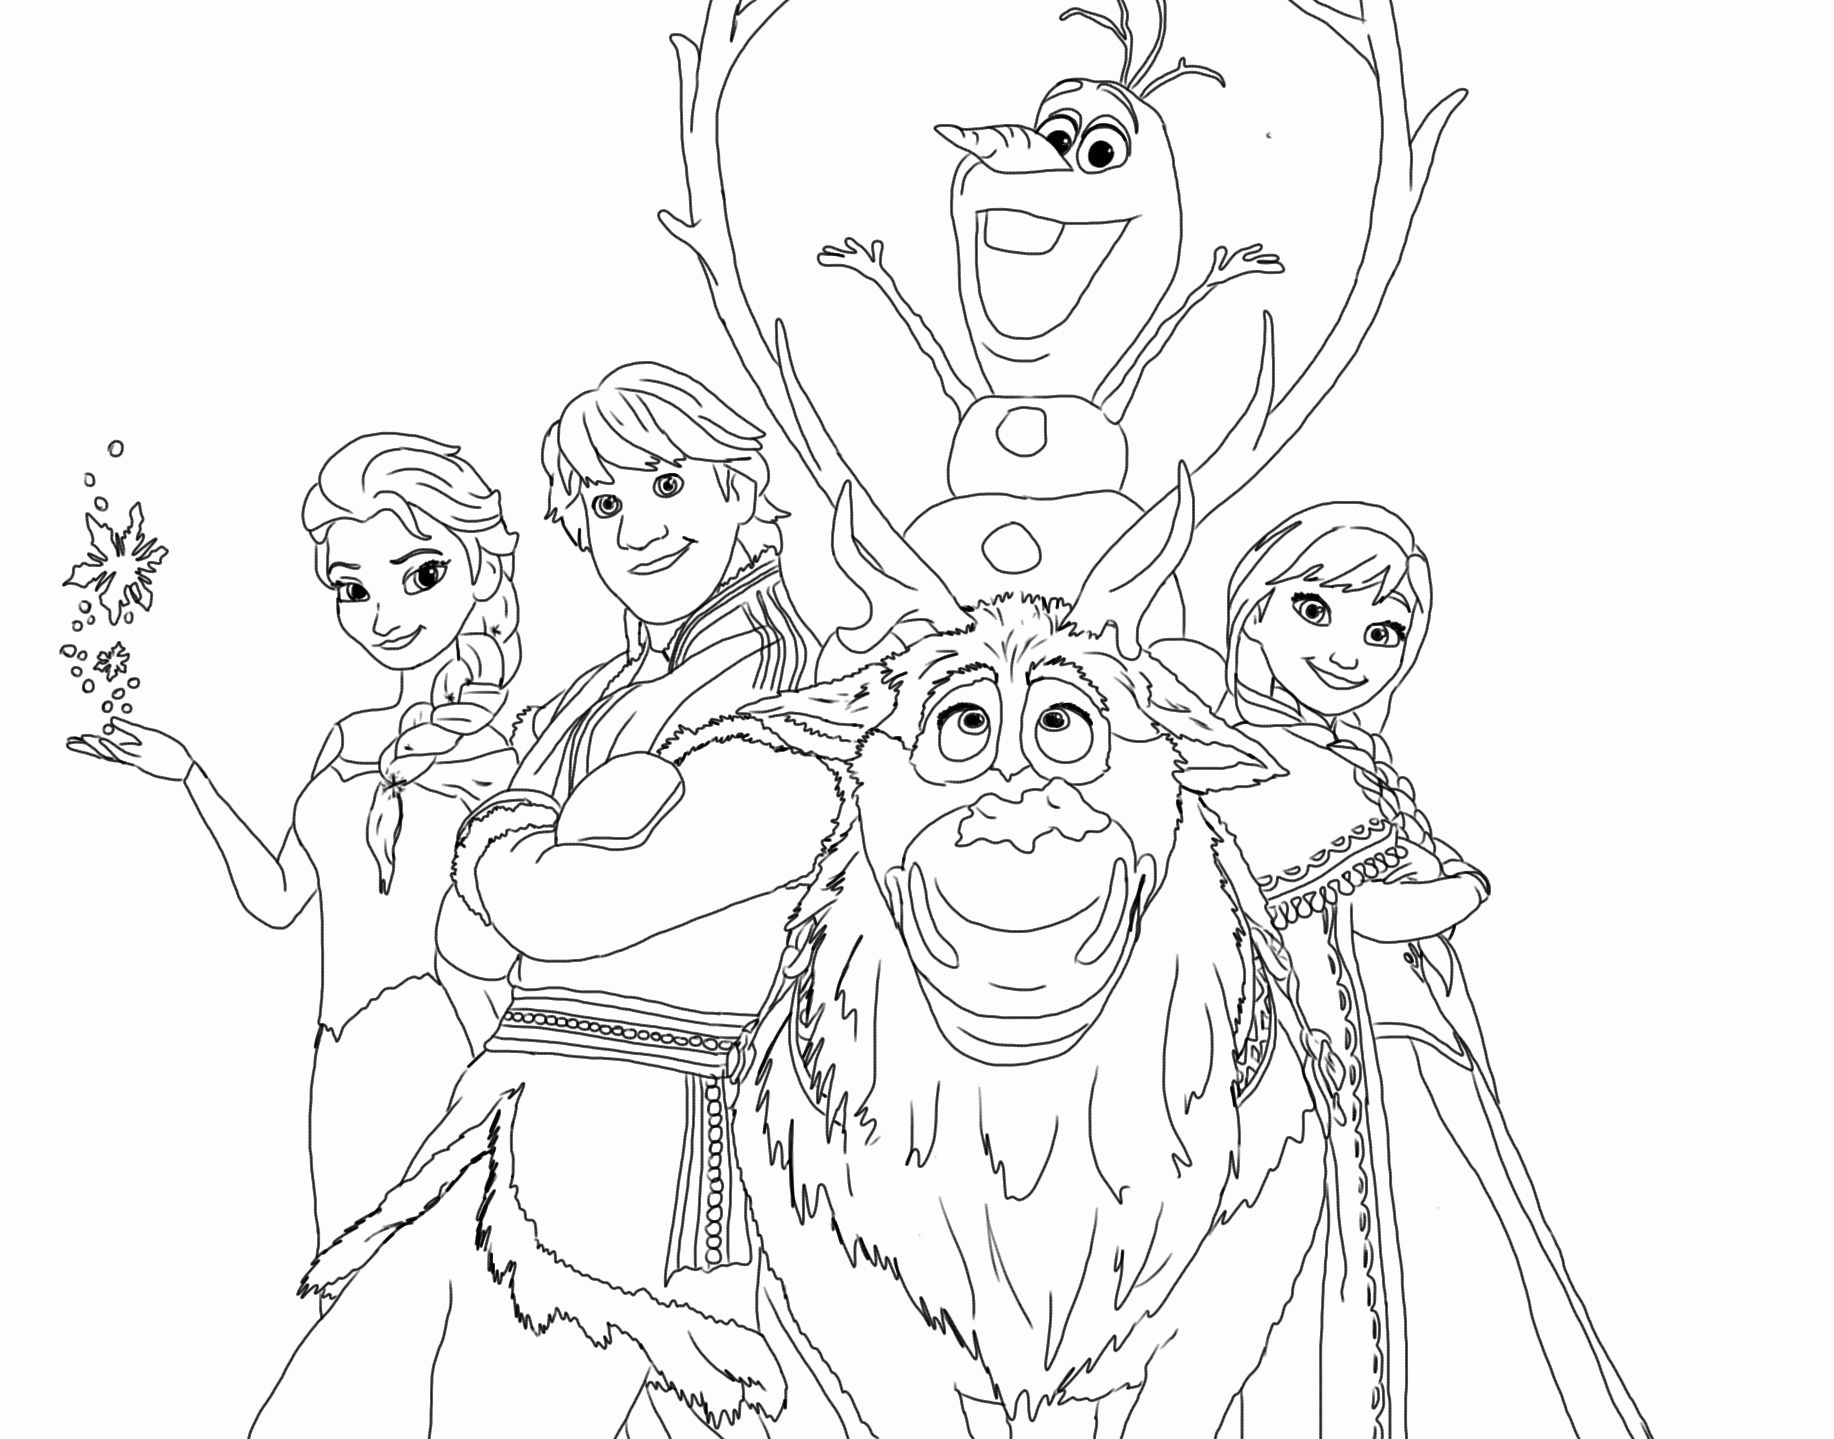 Frozen Coloring Pages For Toddlers Awesome Coloring Pages 46 Splendi Disney Coloring Pages Frozen Frozen Coloring Pages Frozen Coloring Elsa Coloring Pages